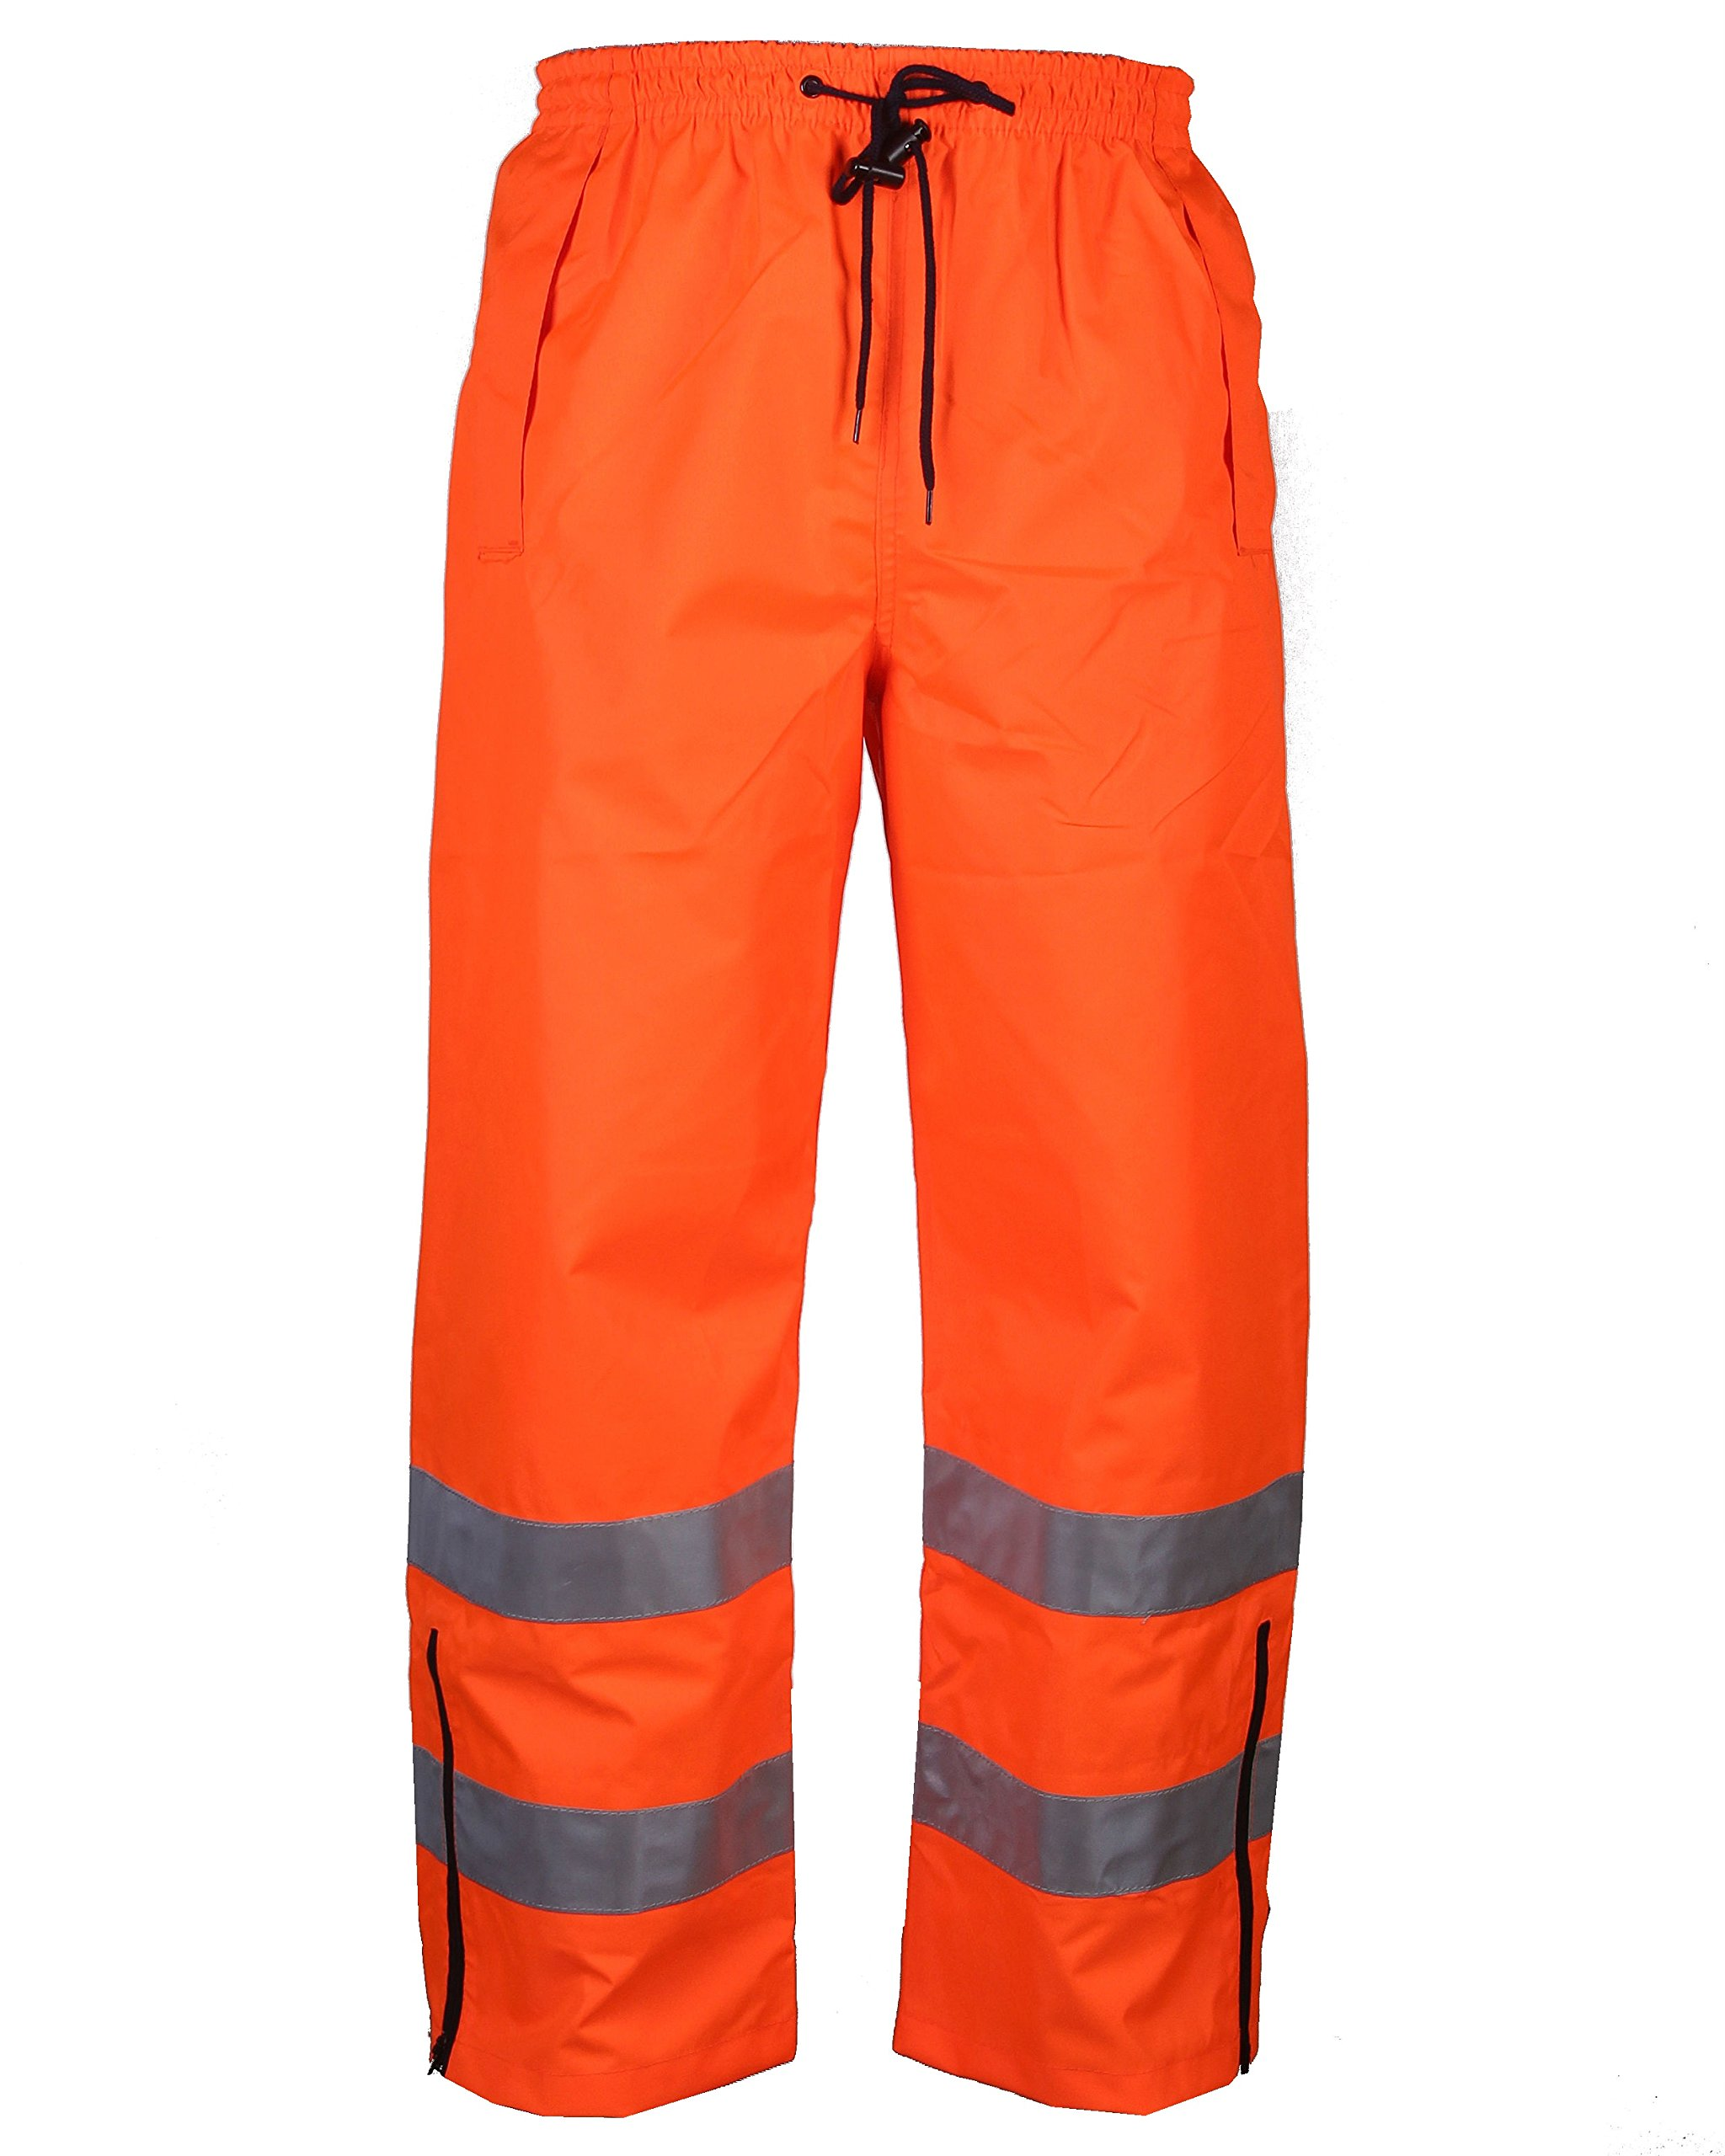 Safety Depot Orange Reflective Class E Safety Draw String Pants Water Resistant High Visibility and Light Weight 738c-3 (5XL)